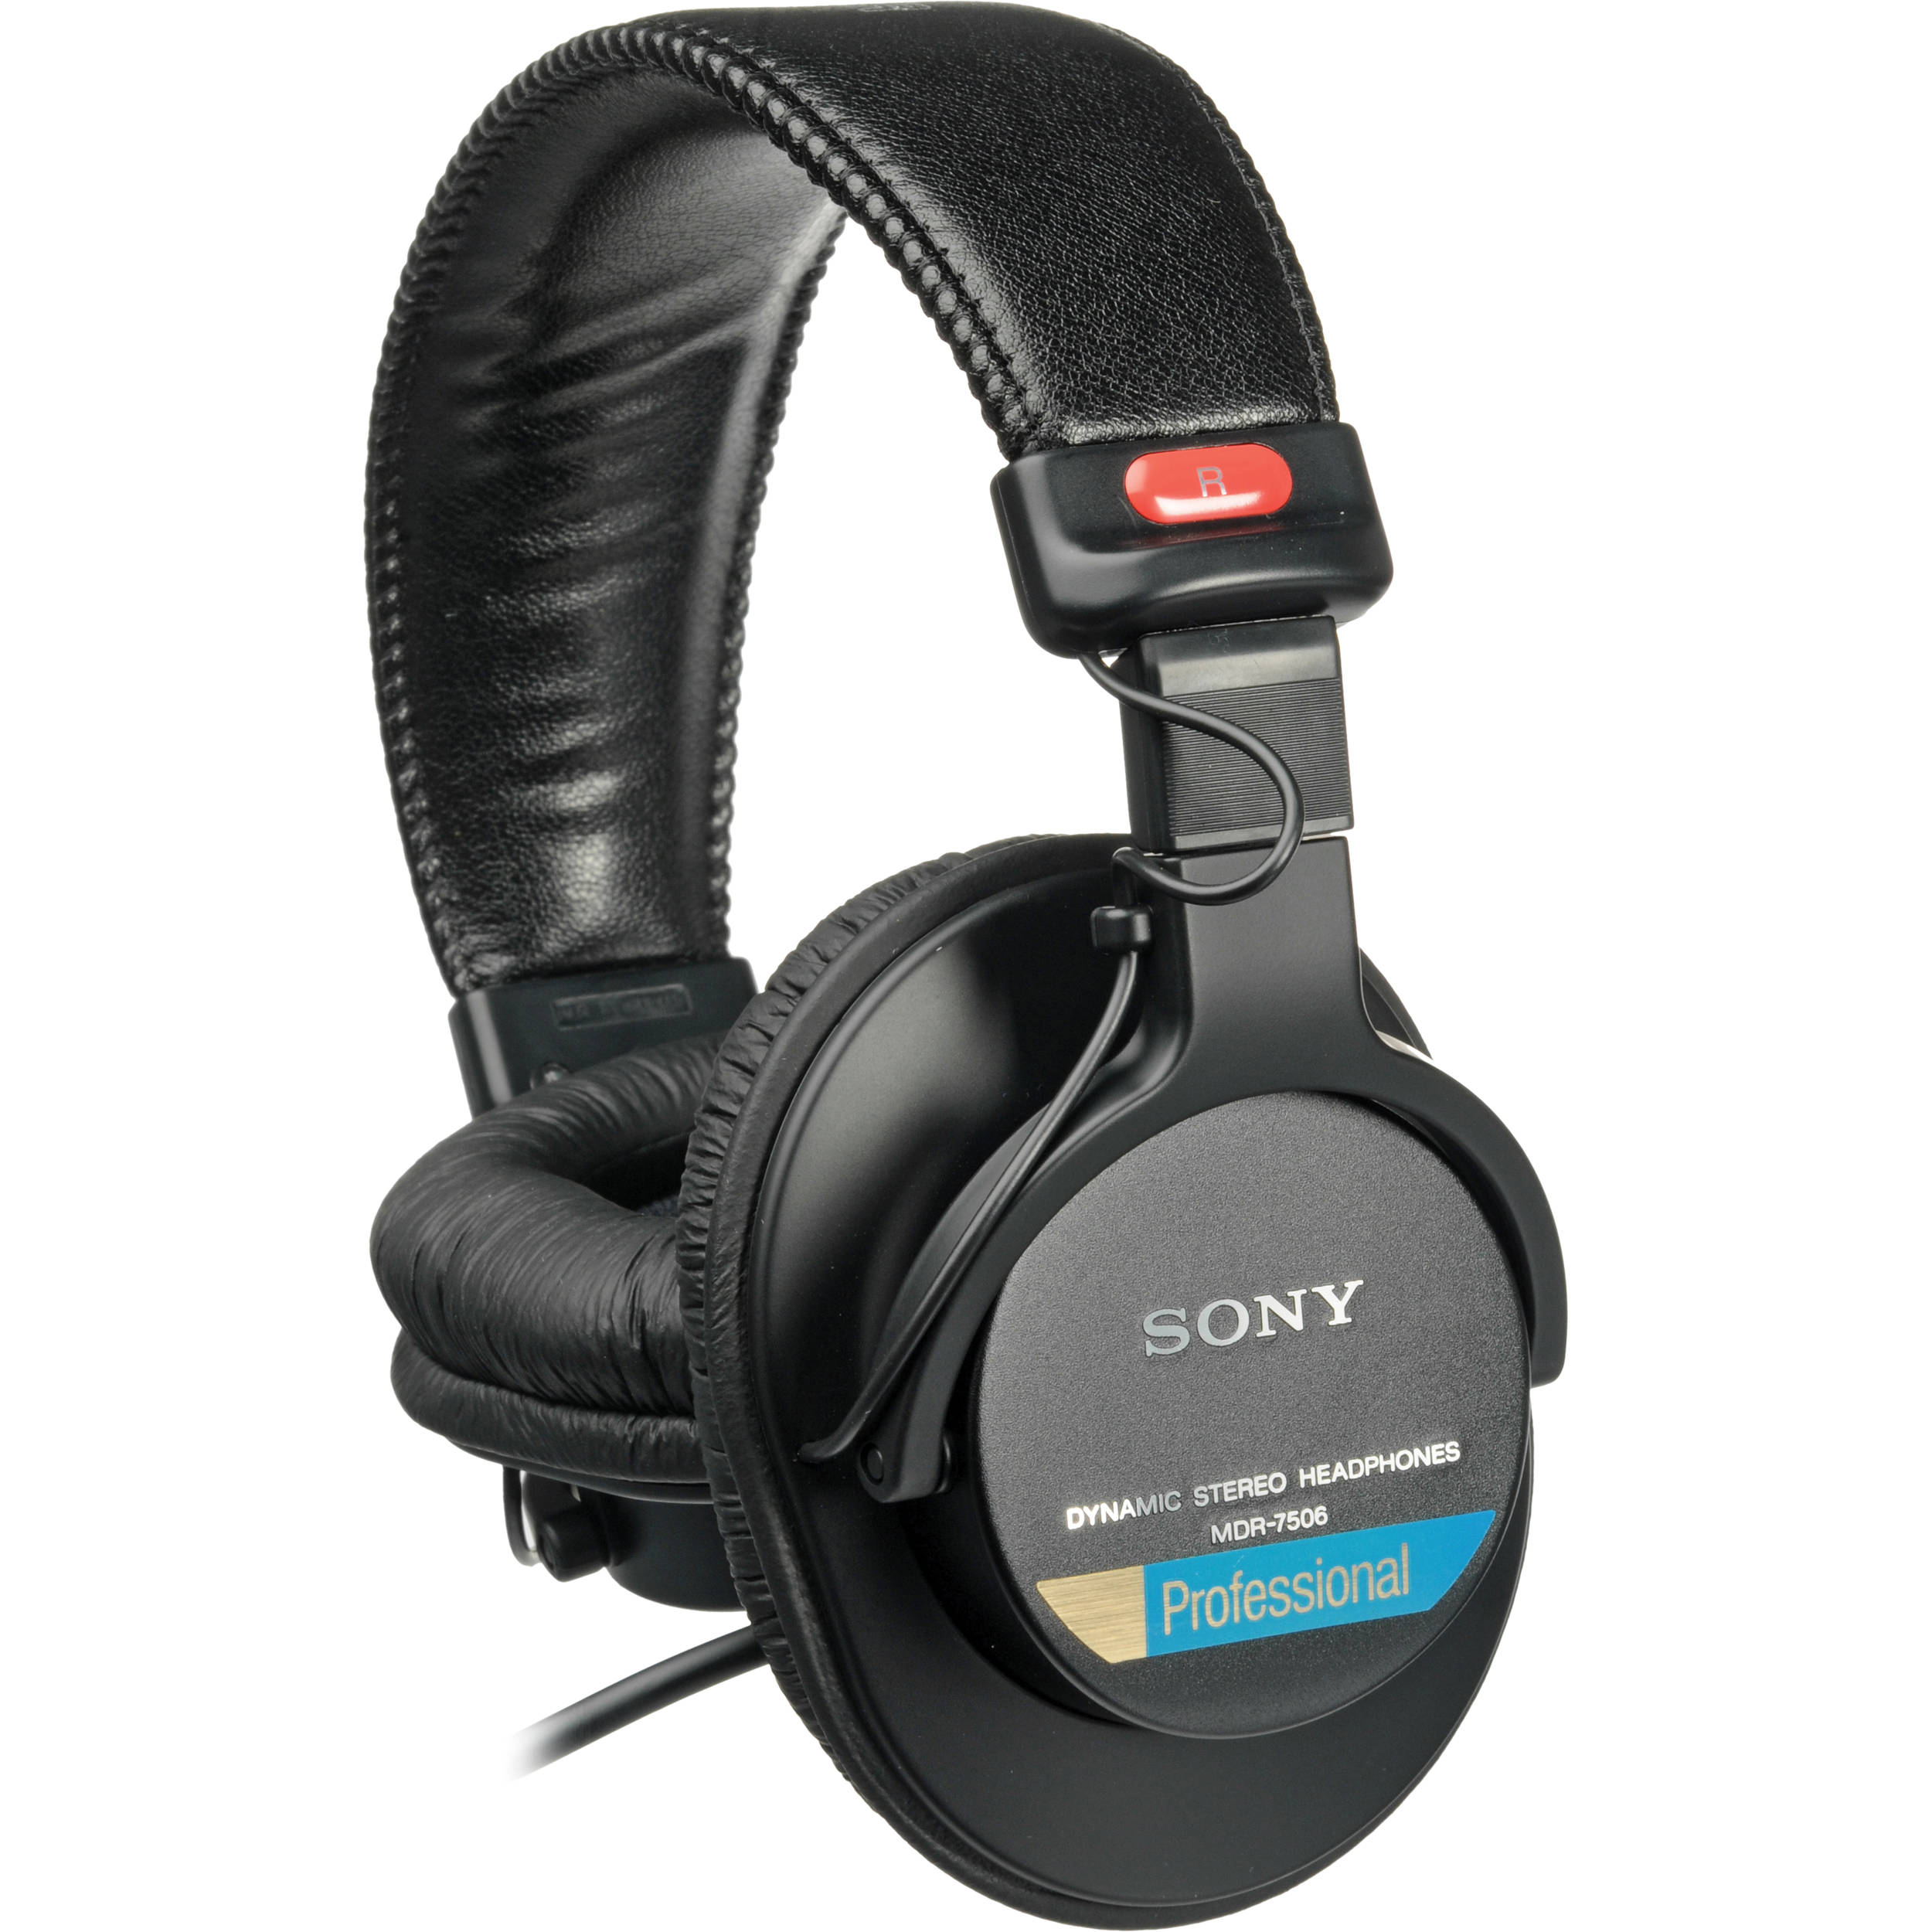 Sony MDR-7506 (approx. $130)